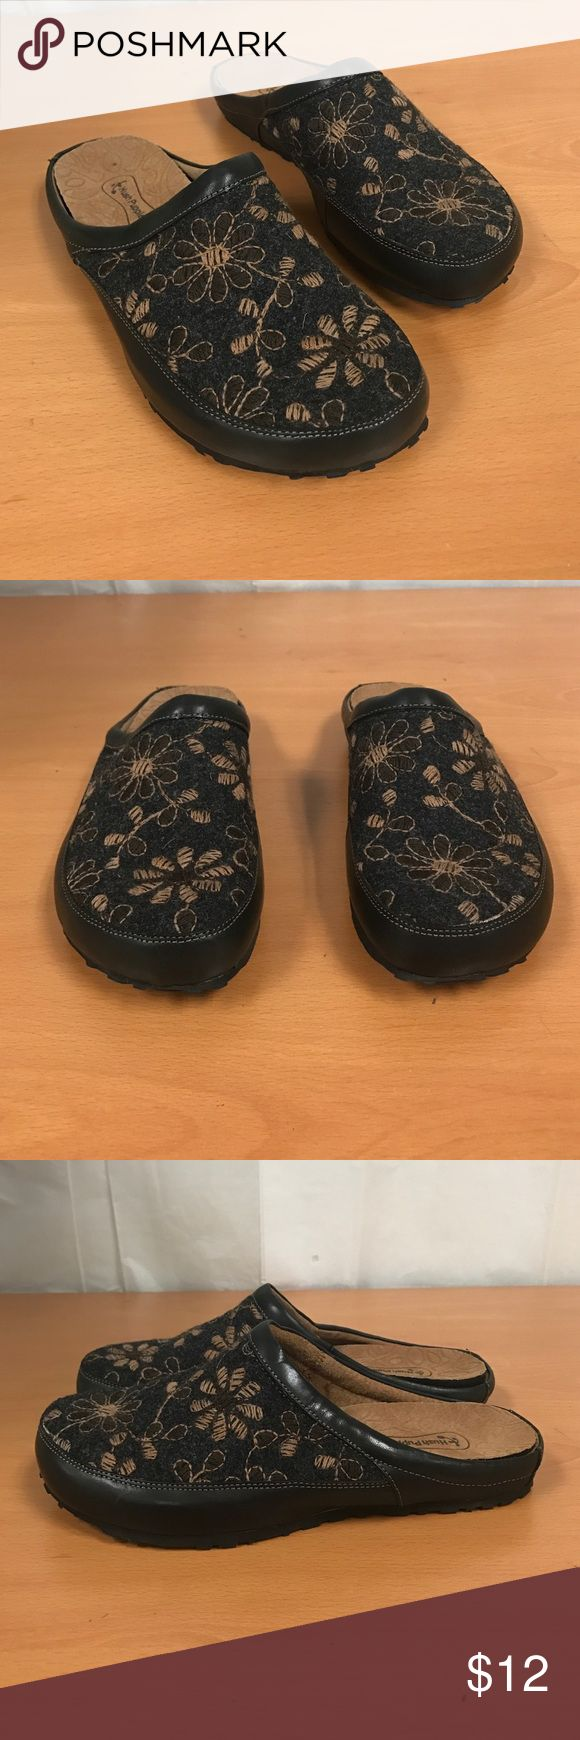 Hush puppies slipper removal padding 9 Item not eligible for bundling 😞 Hush Puppies Shoes Slippers